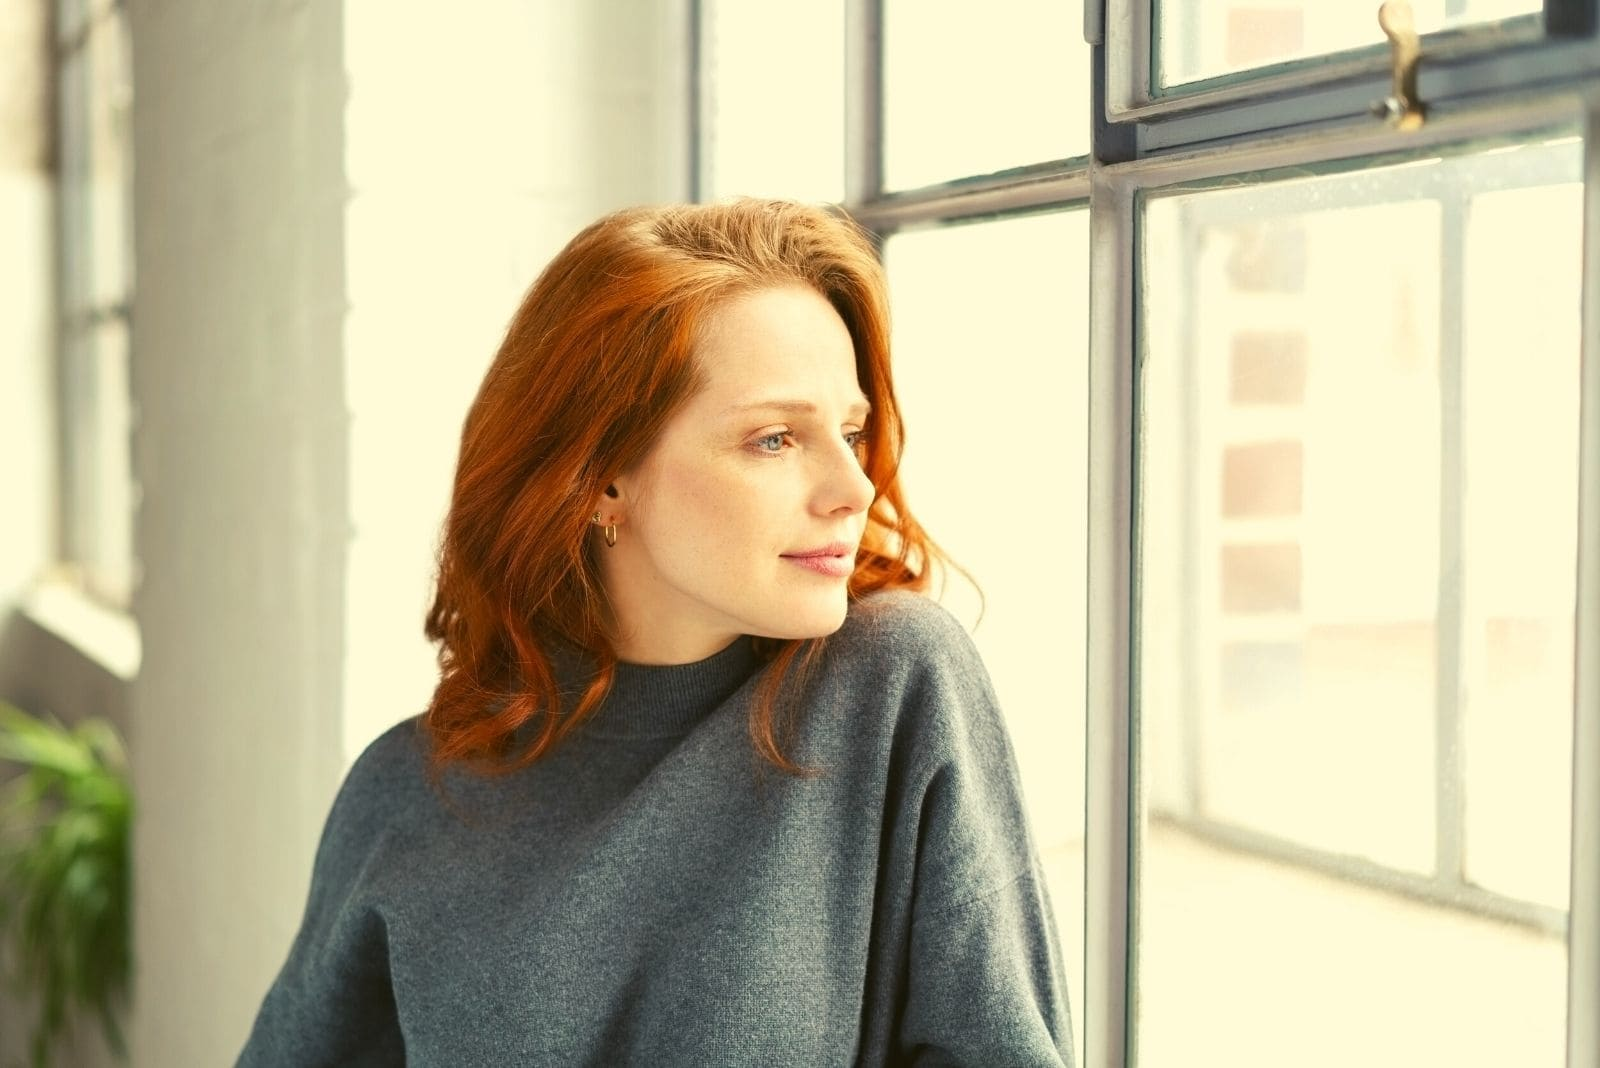 pensive woman smiling and standing near the window looking away